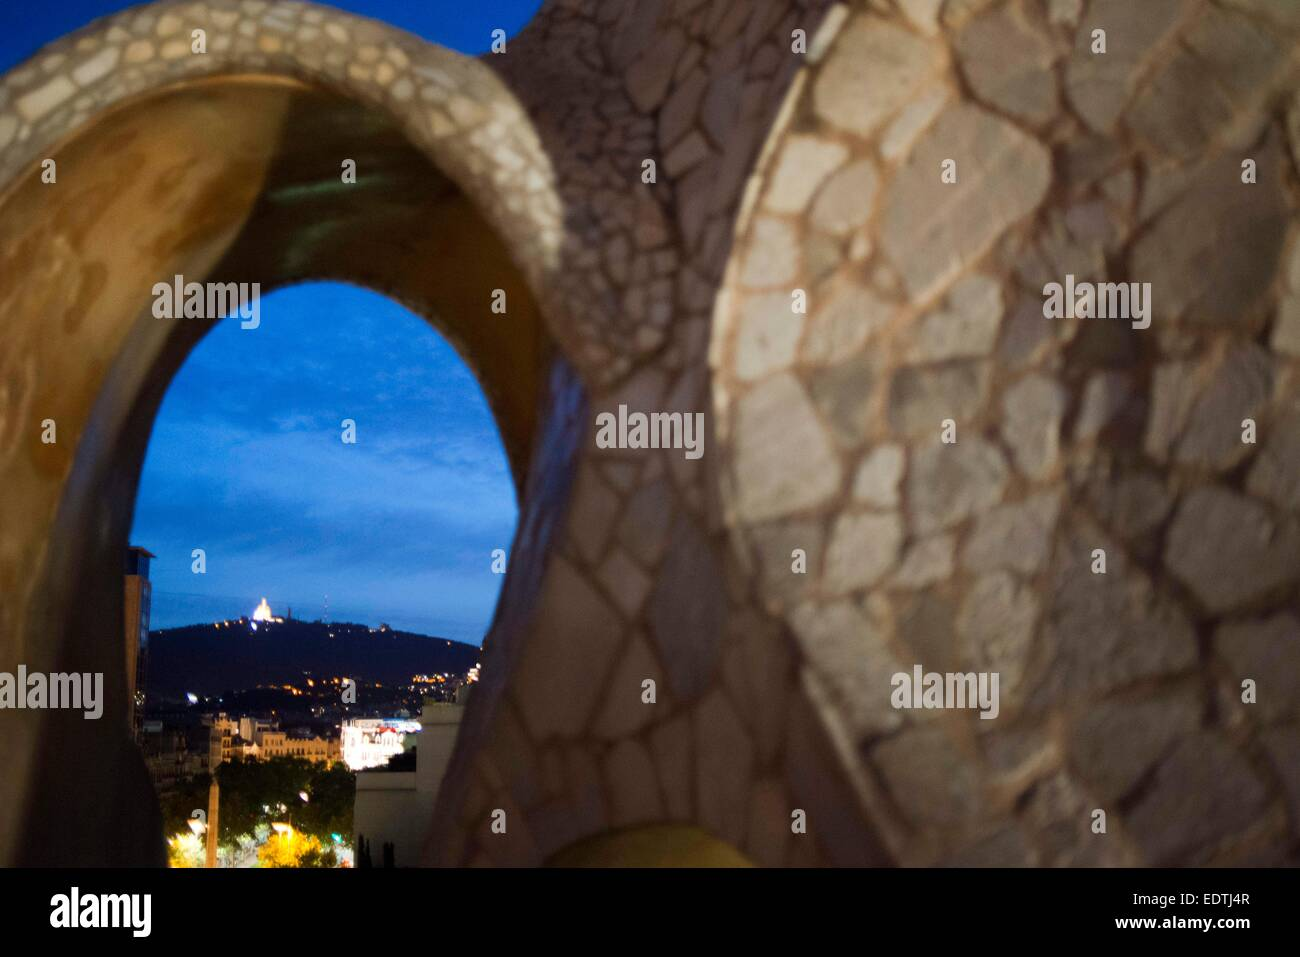 Casa Mila, La Pedrera, skyline of Barcelona, Spain. The chimneys. Panorama of the roof at dusk, evening, night. - Stock Image